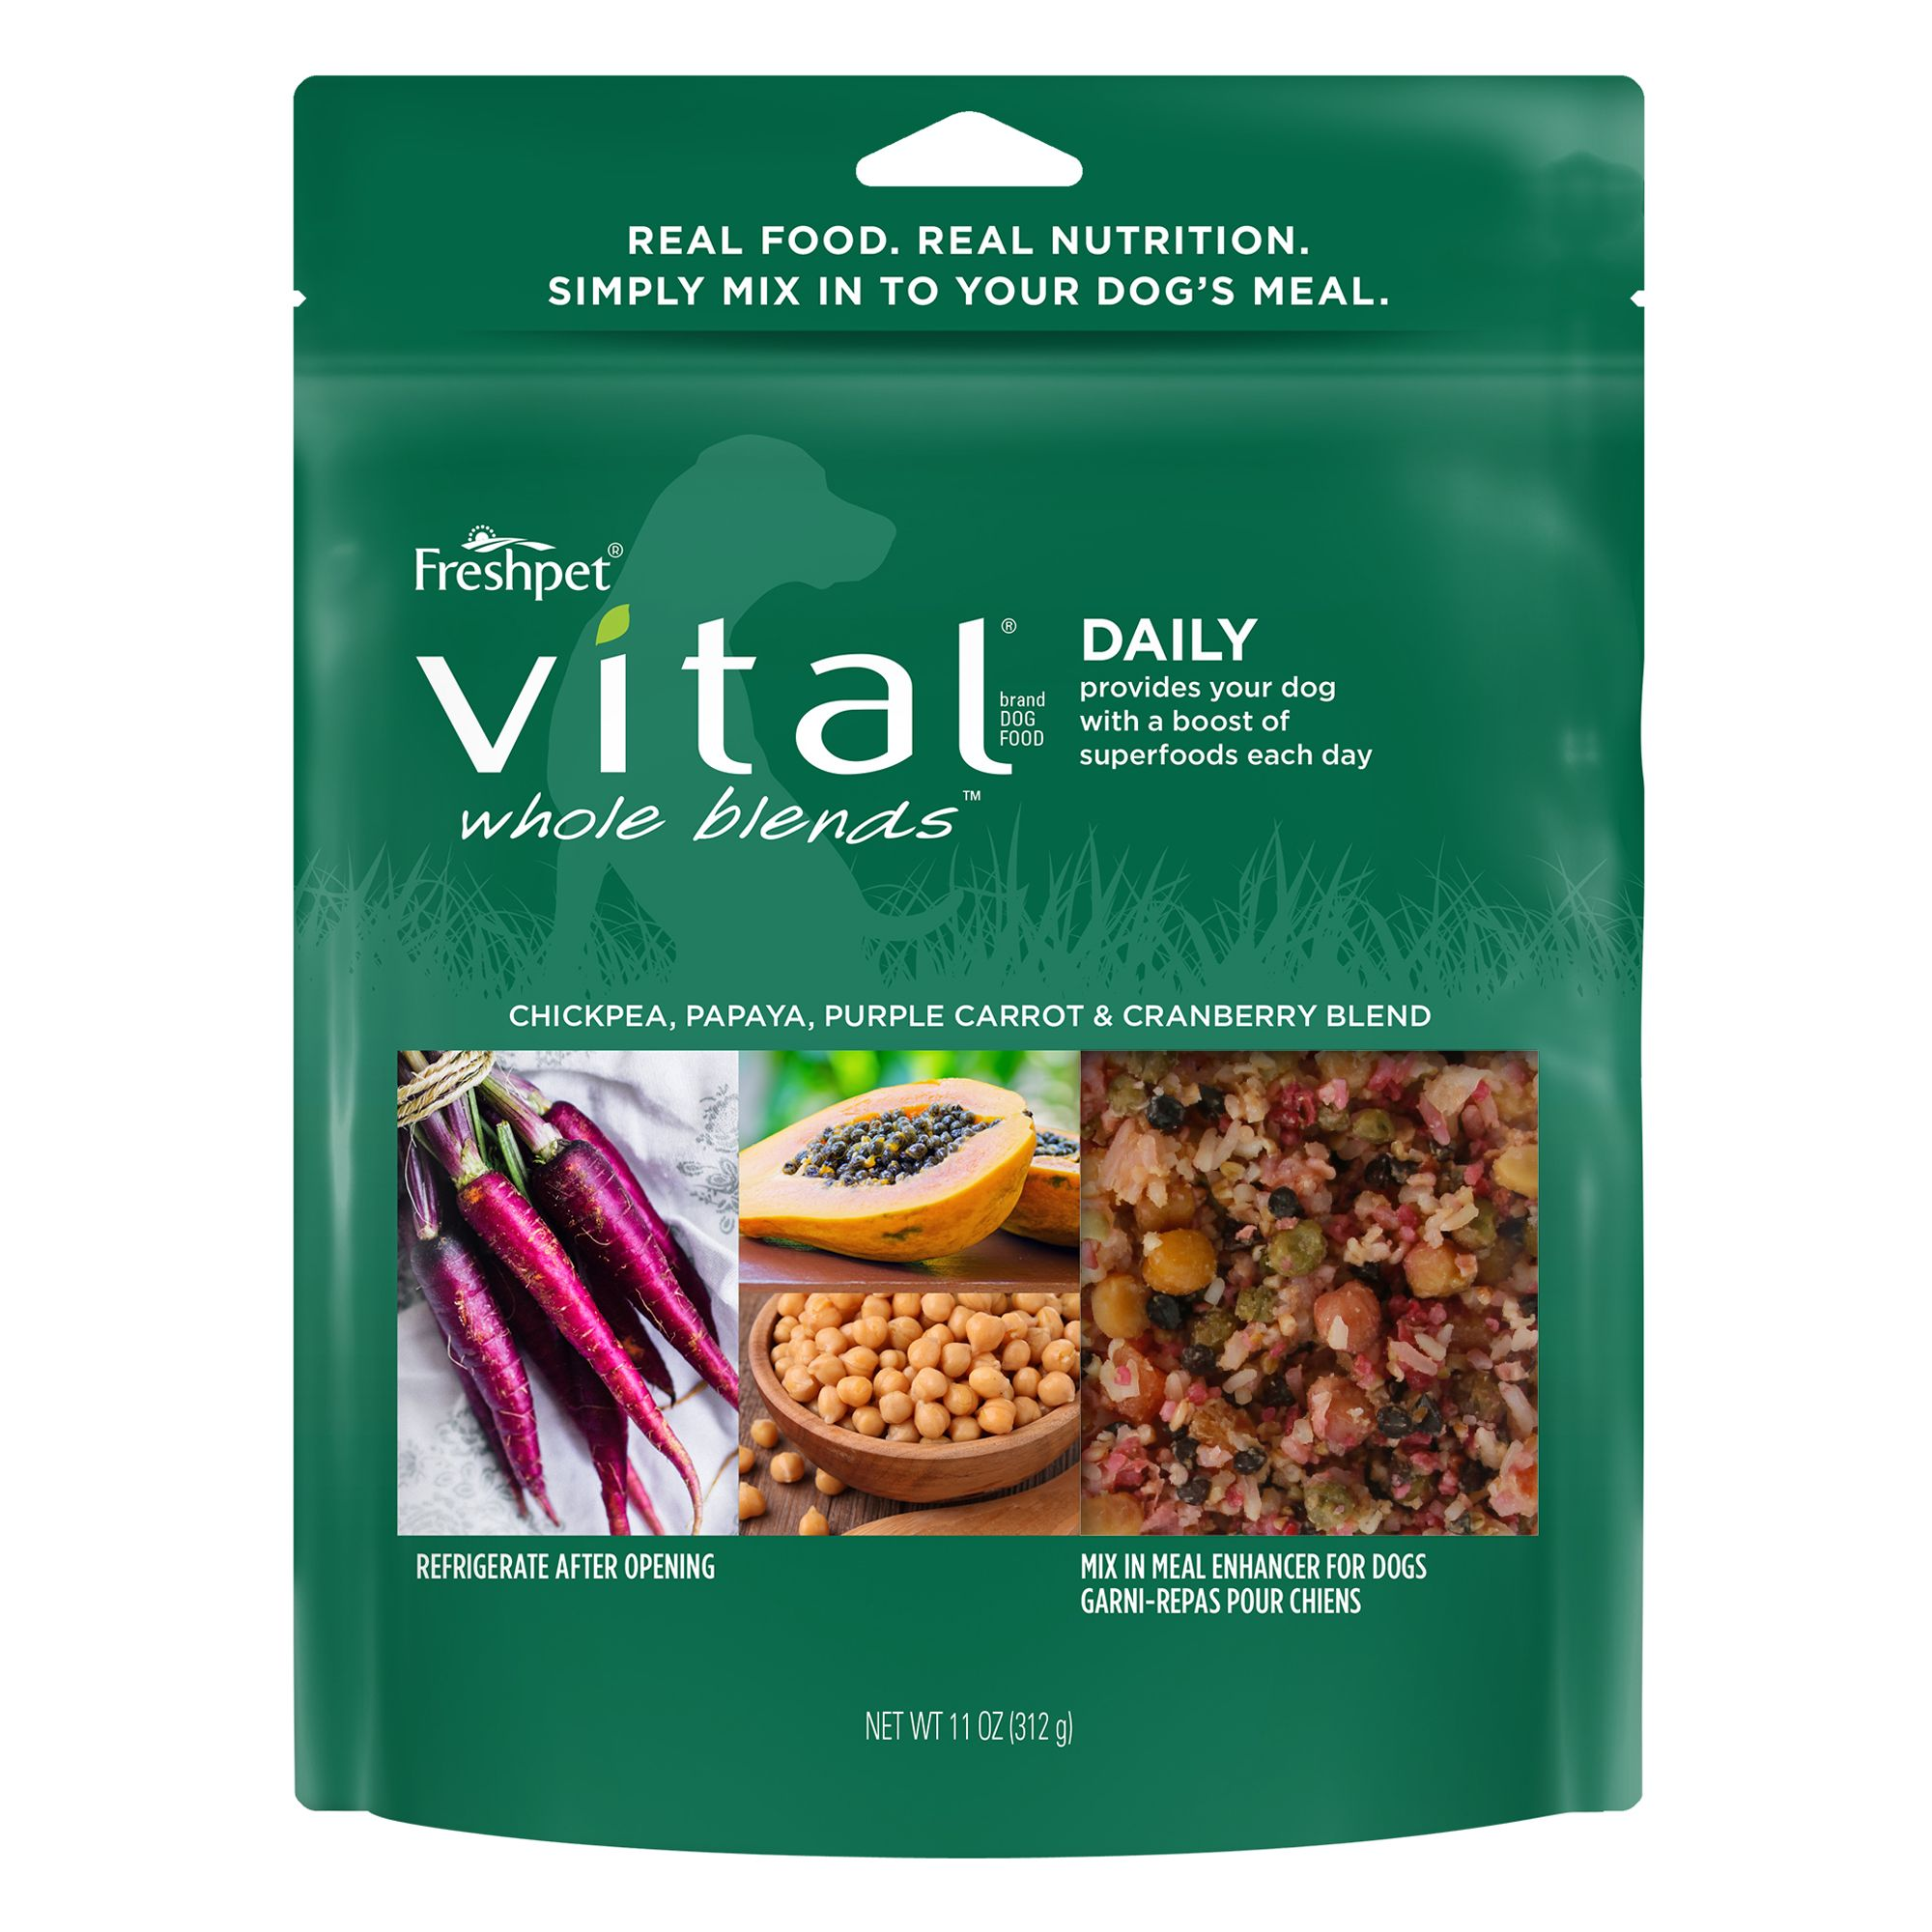 Freshpet Vital Whole Blends Daily Dog Food Enhancer Chickpea Papaya And Carrot Size 11 Oz